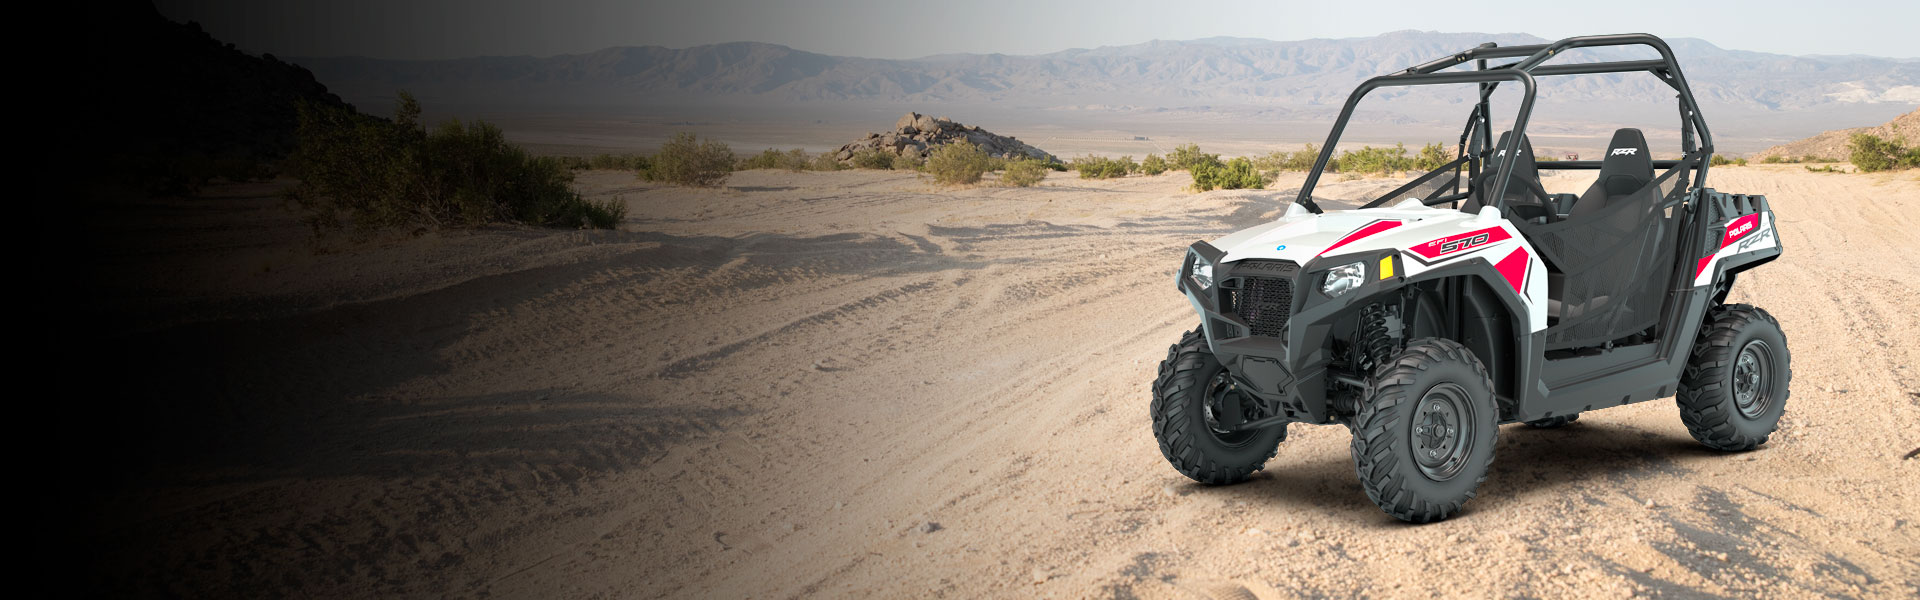 THE DRIVING FORCE IN OFF-ROAD